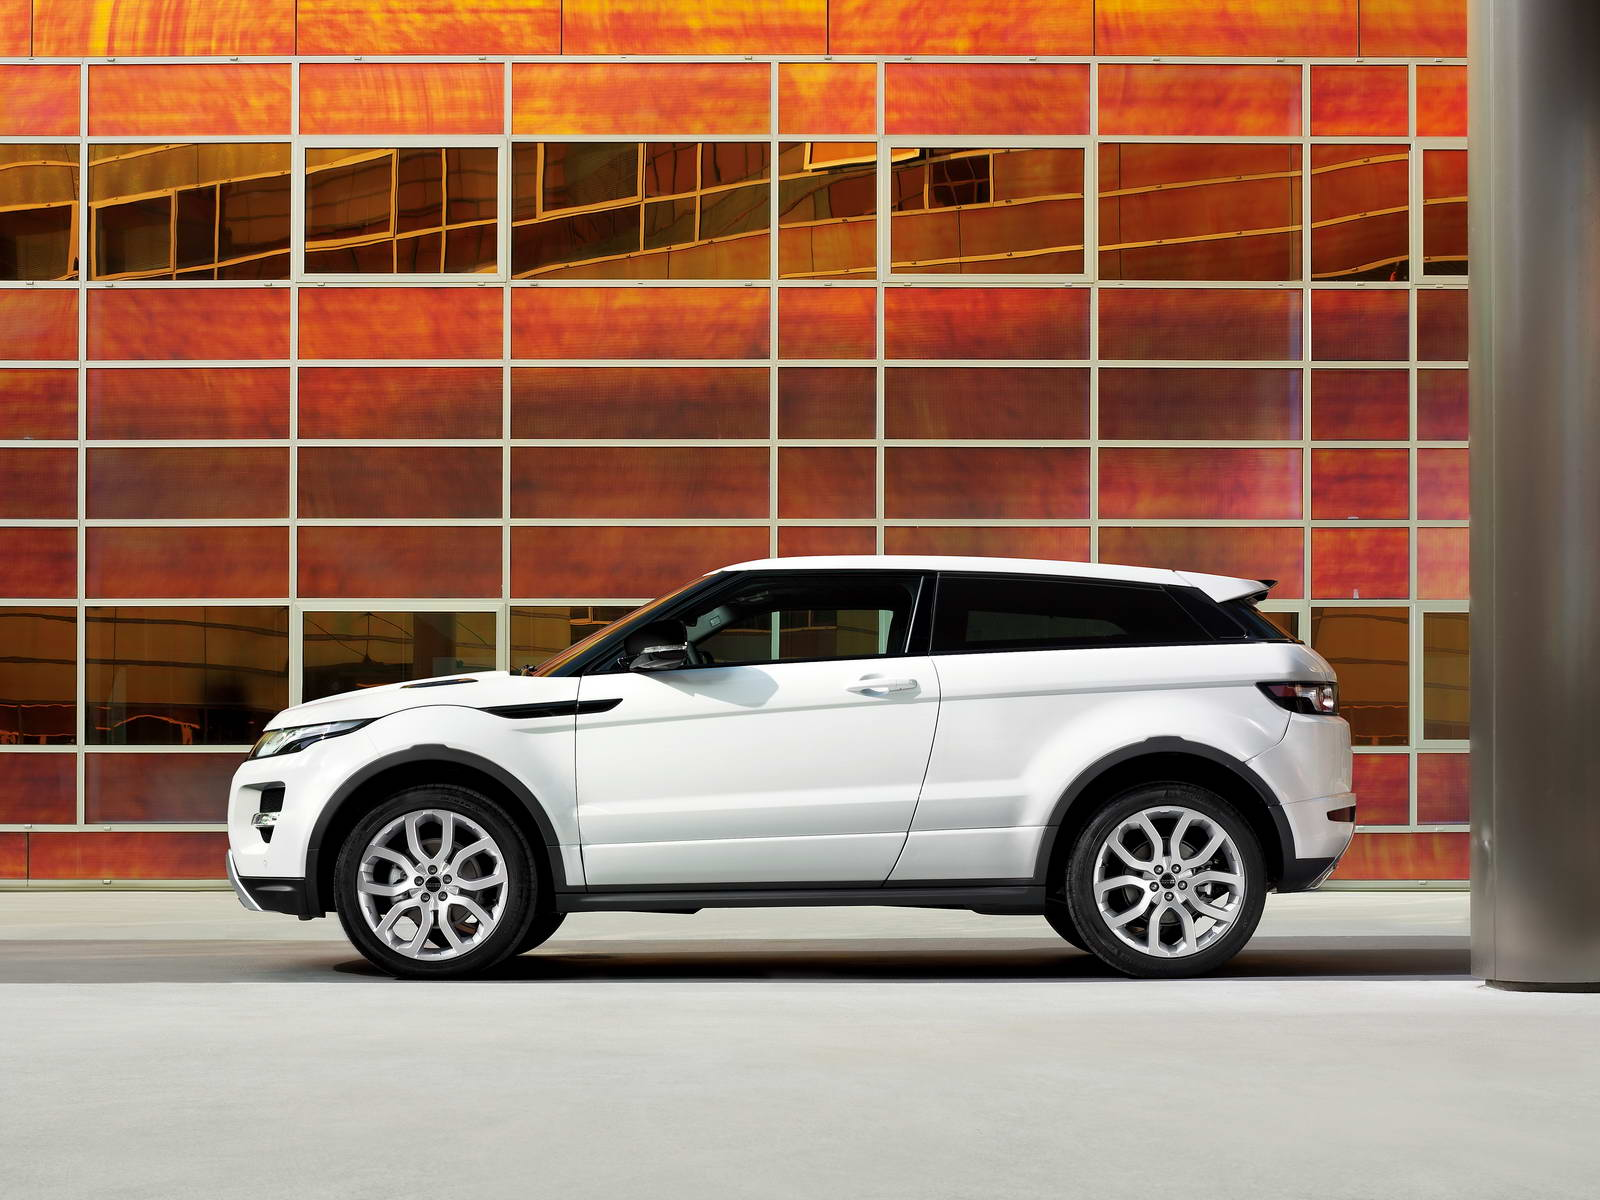 Range Rover Evoque 2011. Vista lateral